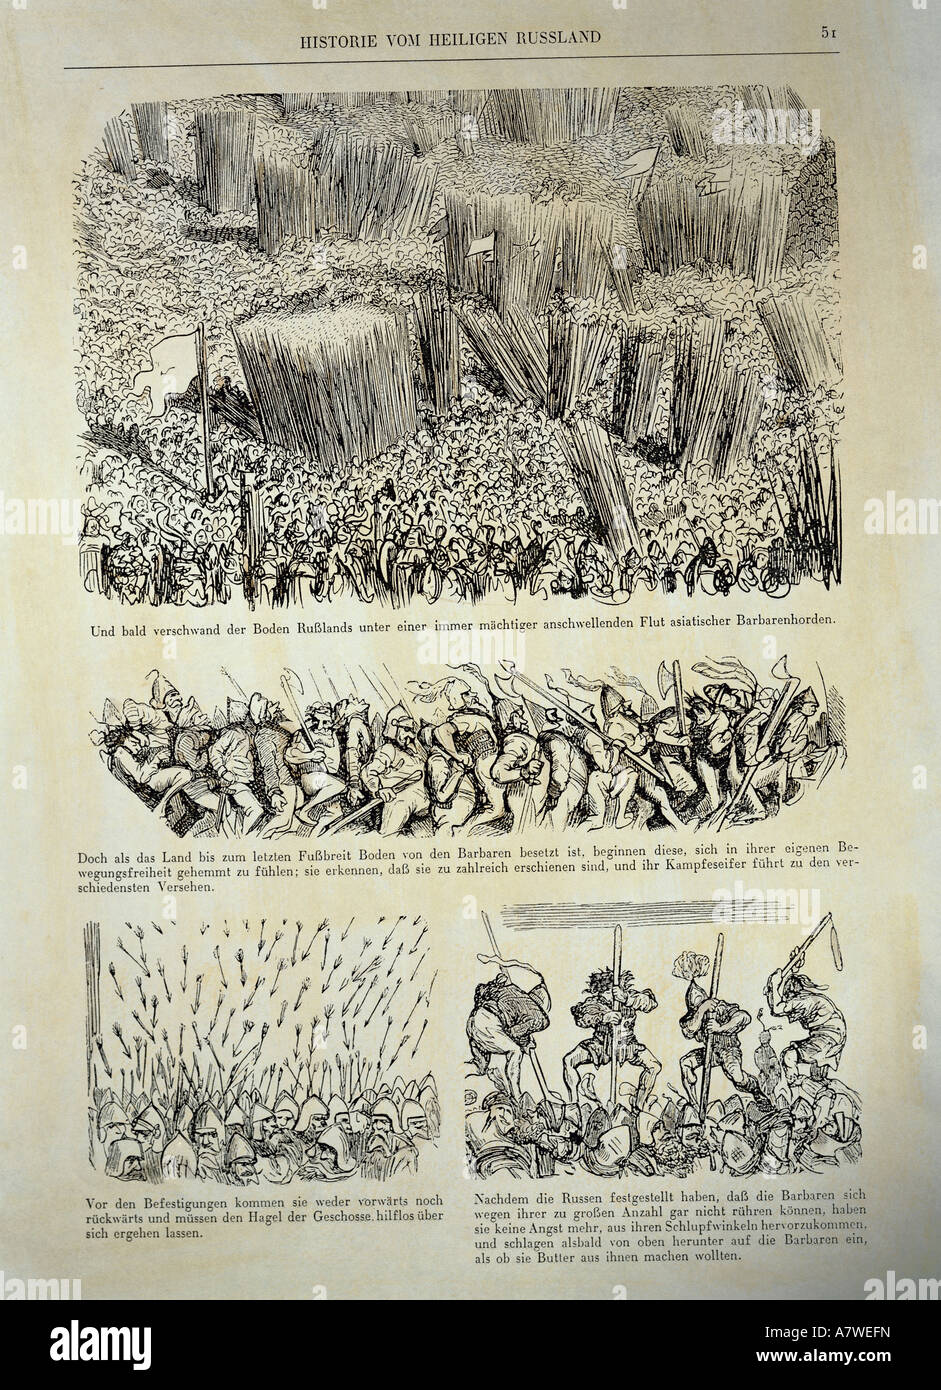 fine arts, Doré, Gustave (1832 - 1883), 'History of the Holy Russia', 1854, German edition, page 51, - Stock Image